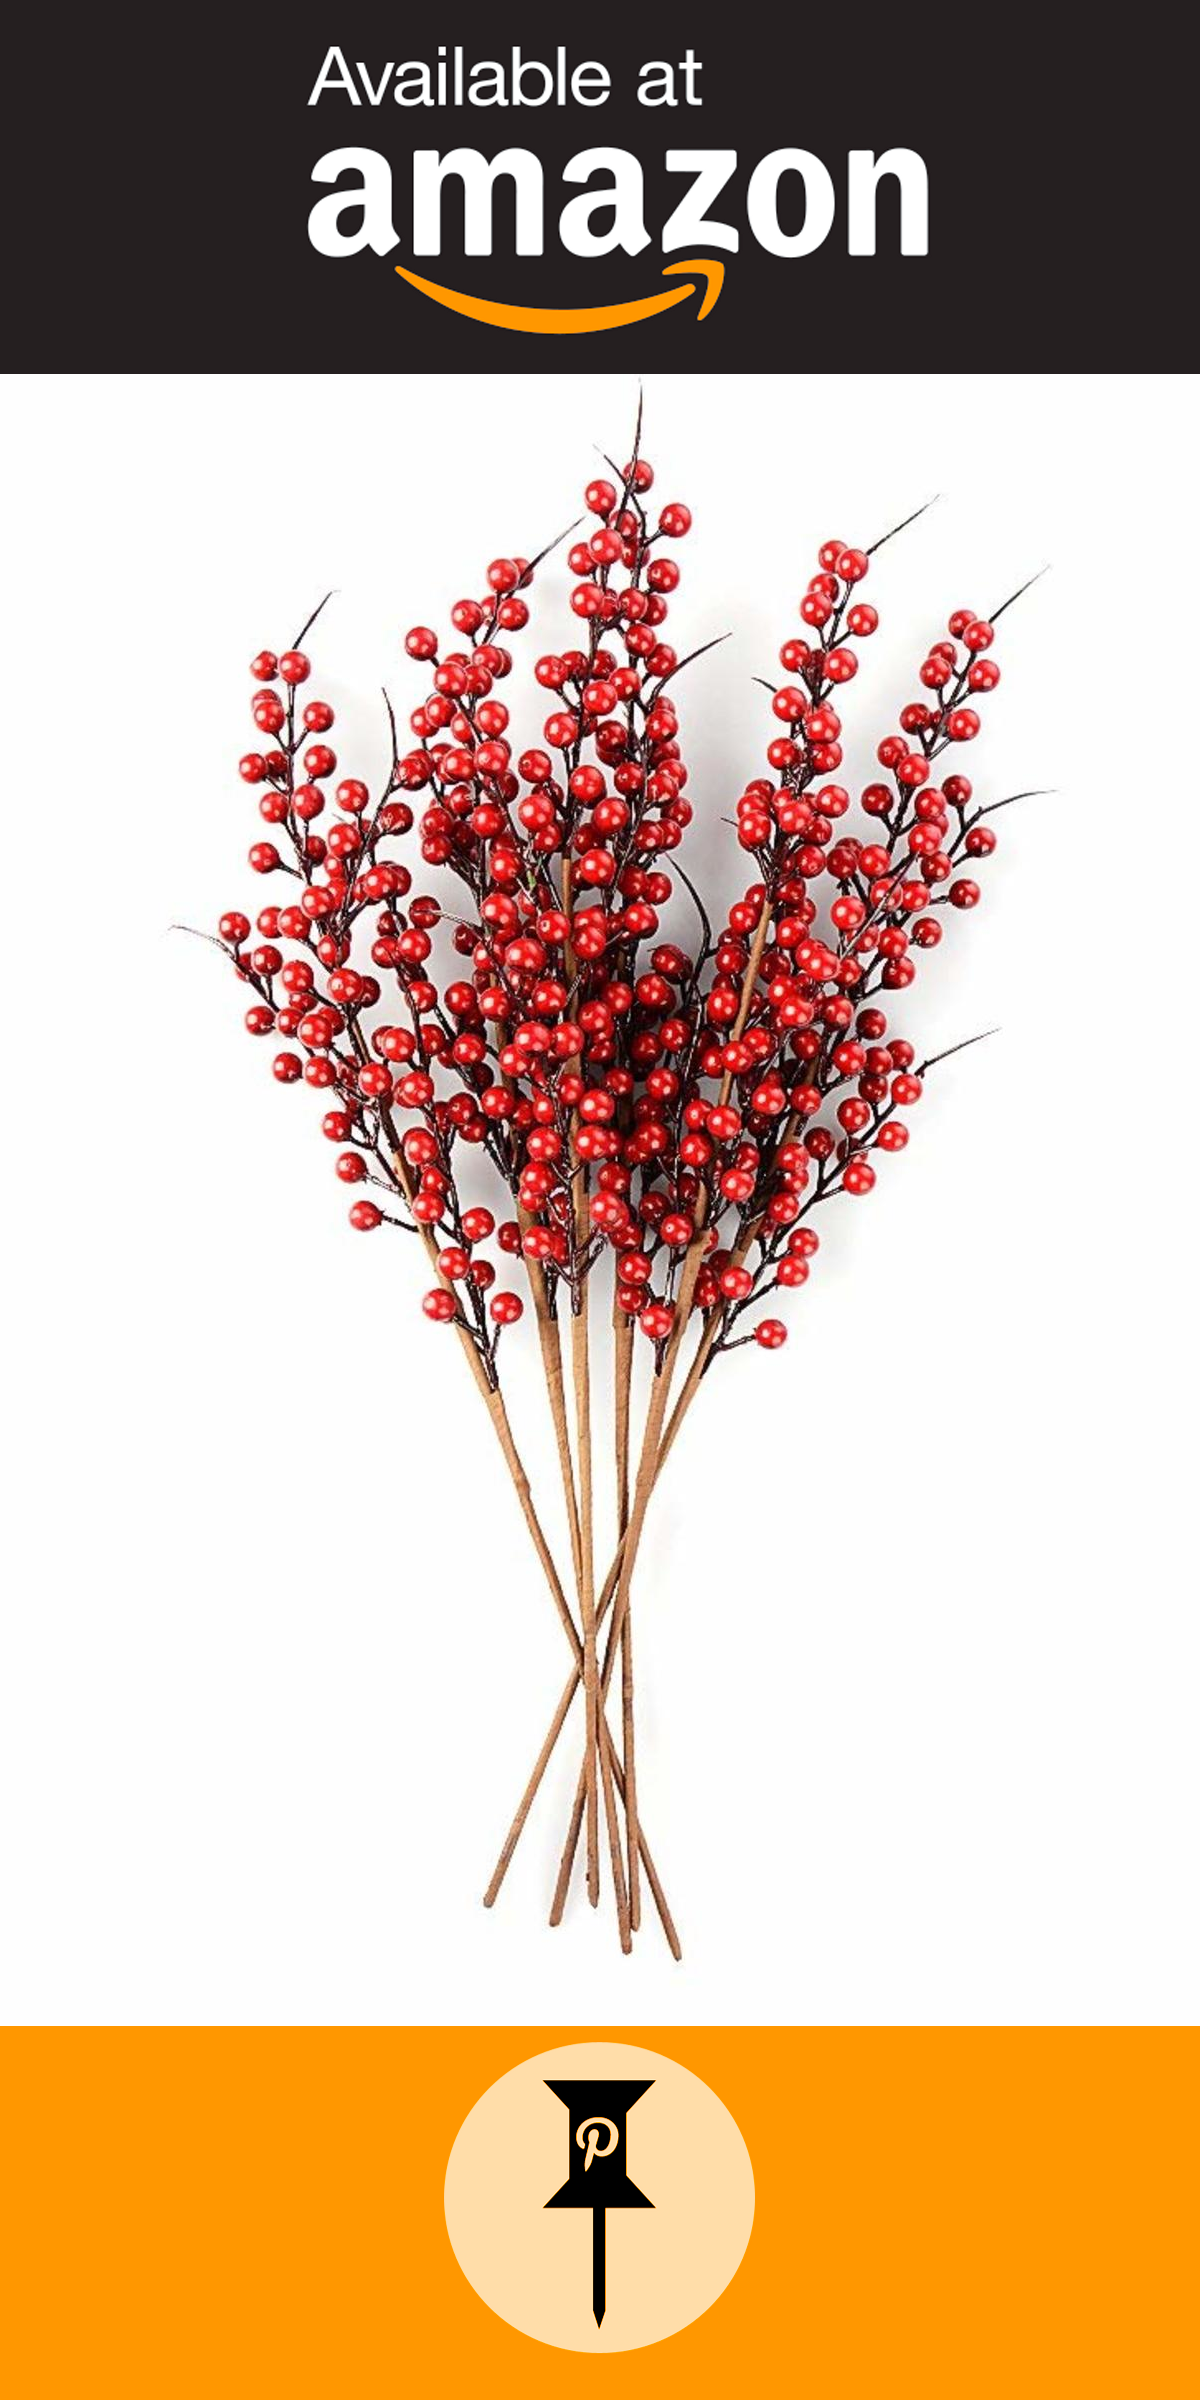 Plante De Noel Boule Rouge jycra baies rouges artificiels, lot de 10 de noël baies